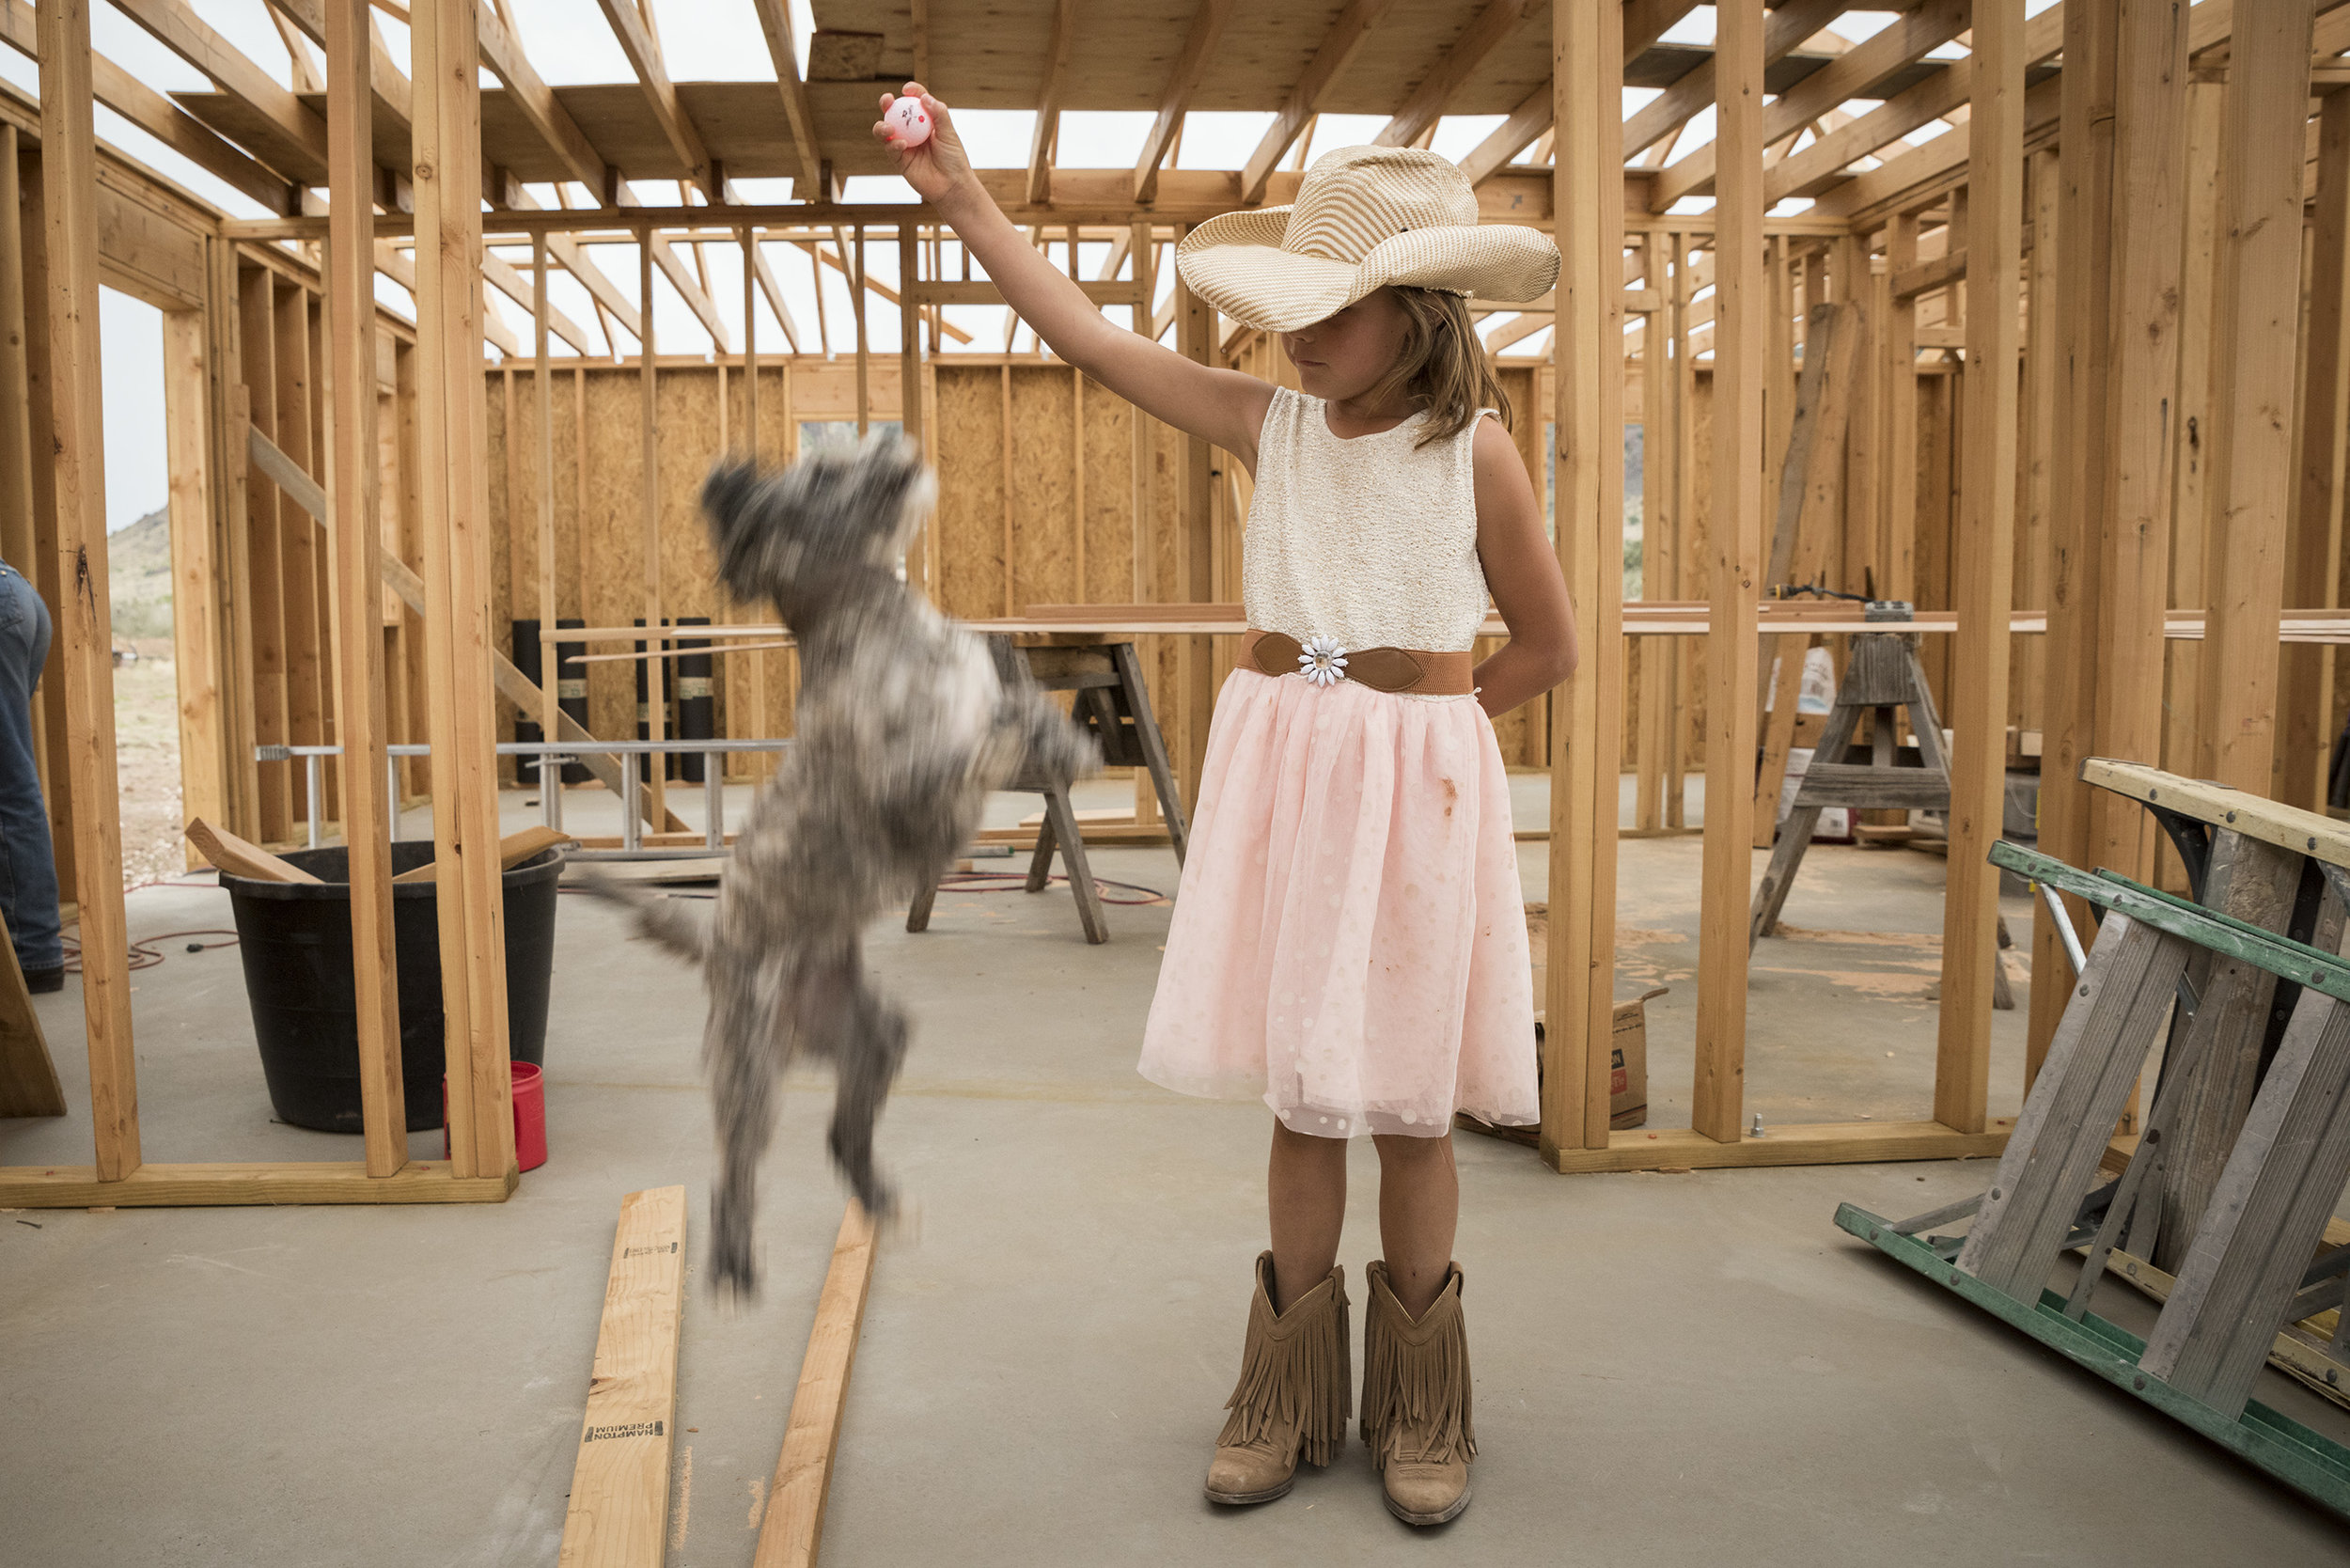 Young Girl Plays with Dog in House Under Construction